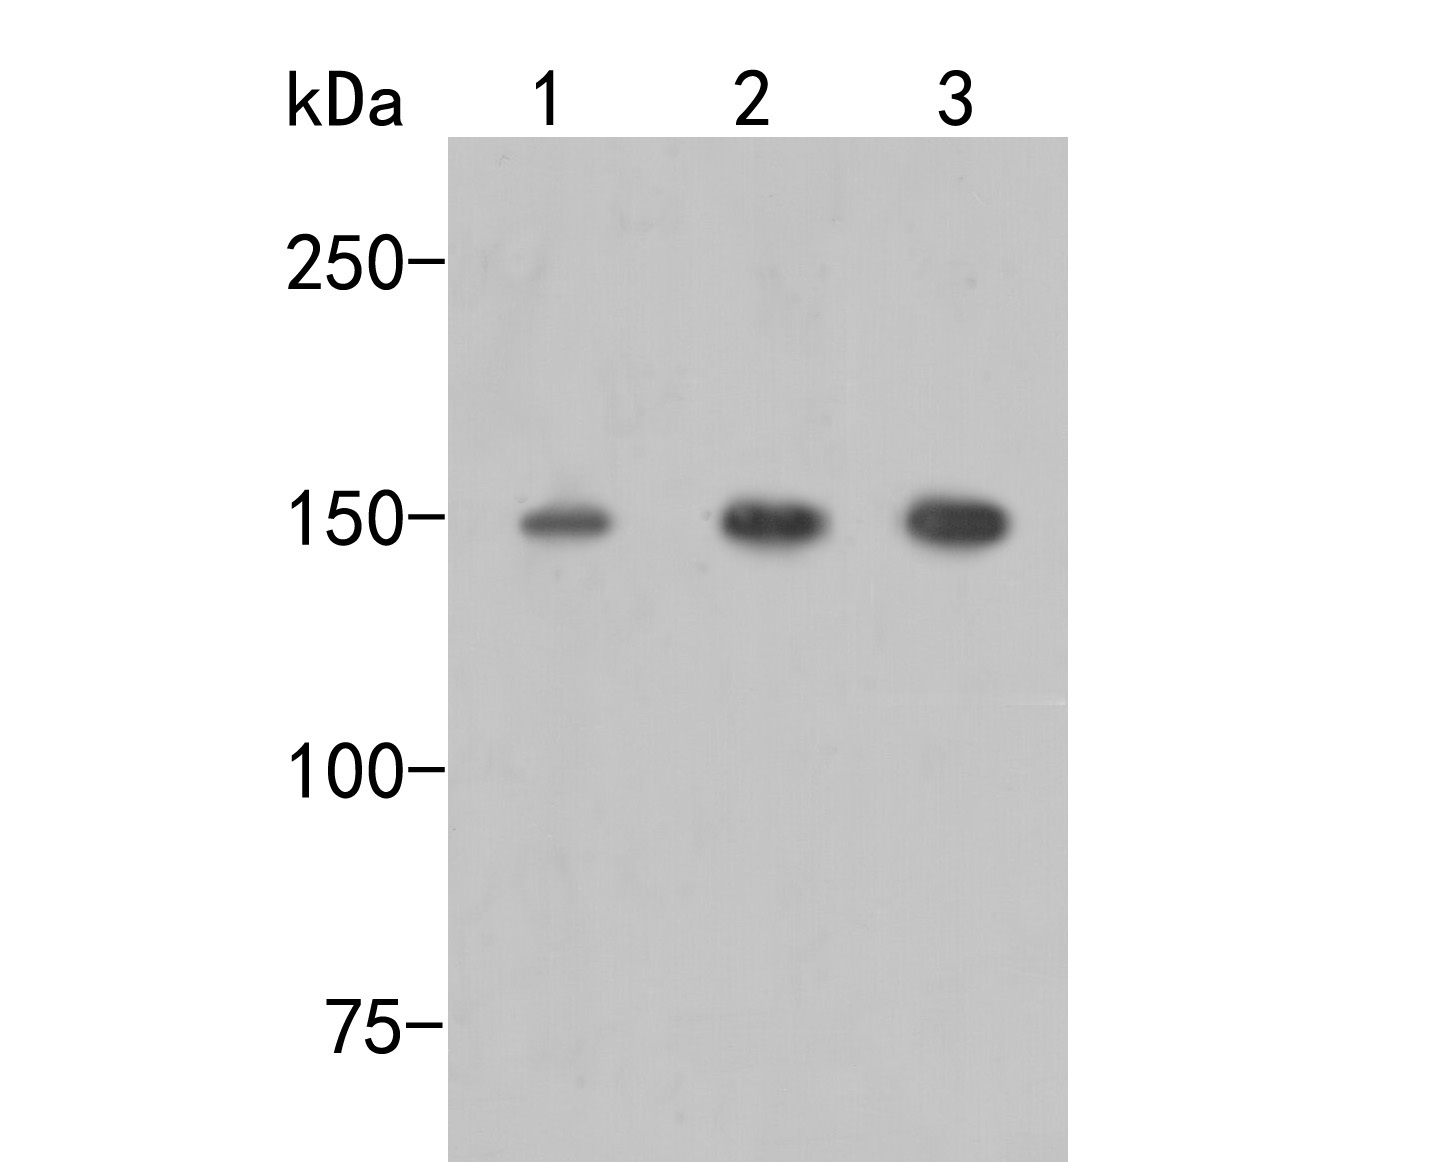 Western blot analysis of mSin3A on different lysates. Proteins were transferred to a PVDF membrane and blocked with 5% BSA in PBS for 1 hour at room temperature. The primary antibody (ER2001-38, 1/500) was used in 5% BSA at room temperature for 2 hours. Goat Anti-Rabbit IgG - HRP Secondary Antibody (HA1001) at 1:5,000 dilution was used for 1 hour at room temperature.<br />  Positive control: <br />  Lane 1: HL-60 cell lysate<br />  Lane 2: A549 cell lysate<br />  Lane 3: Siha cell lysate